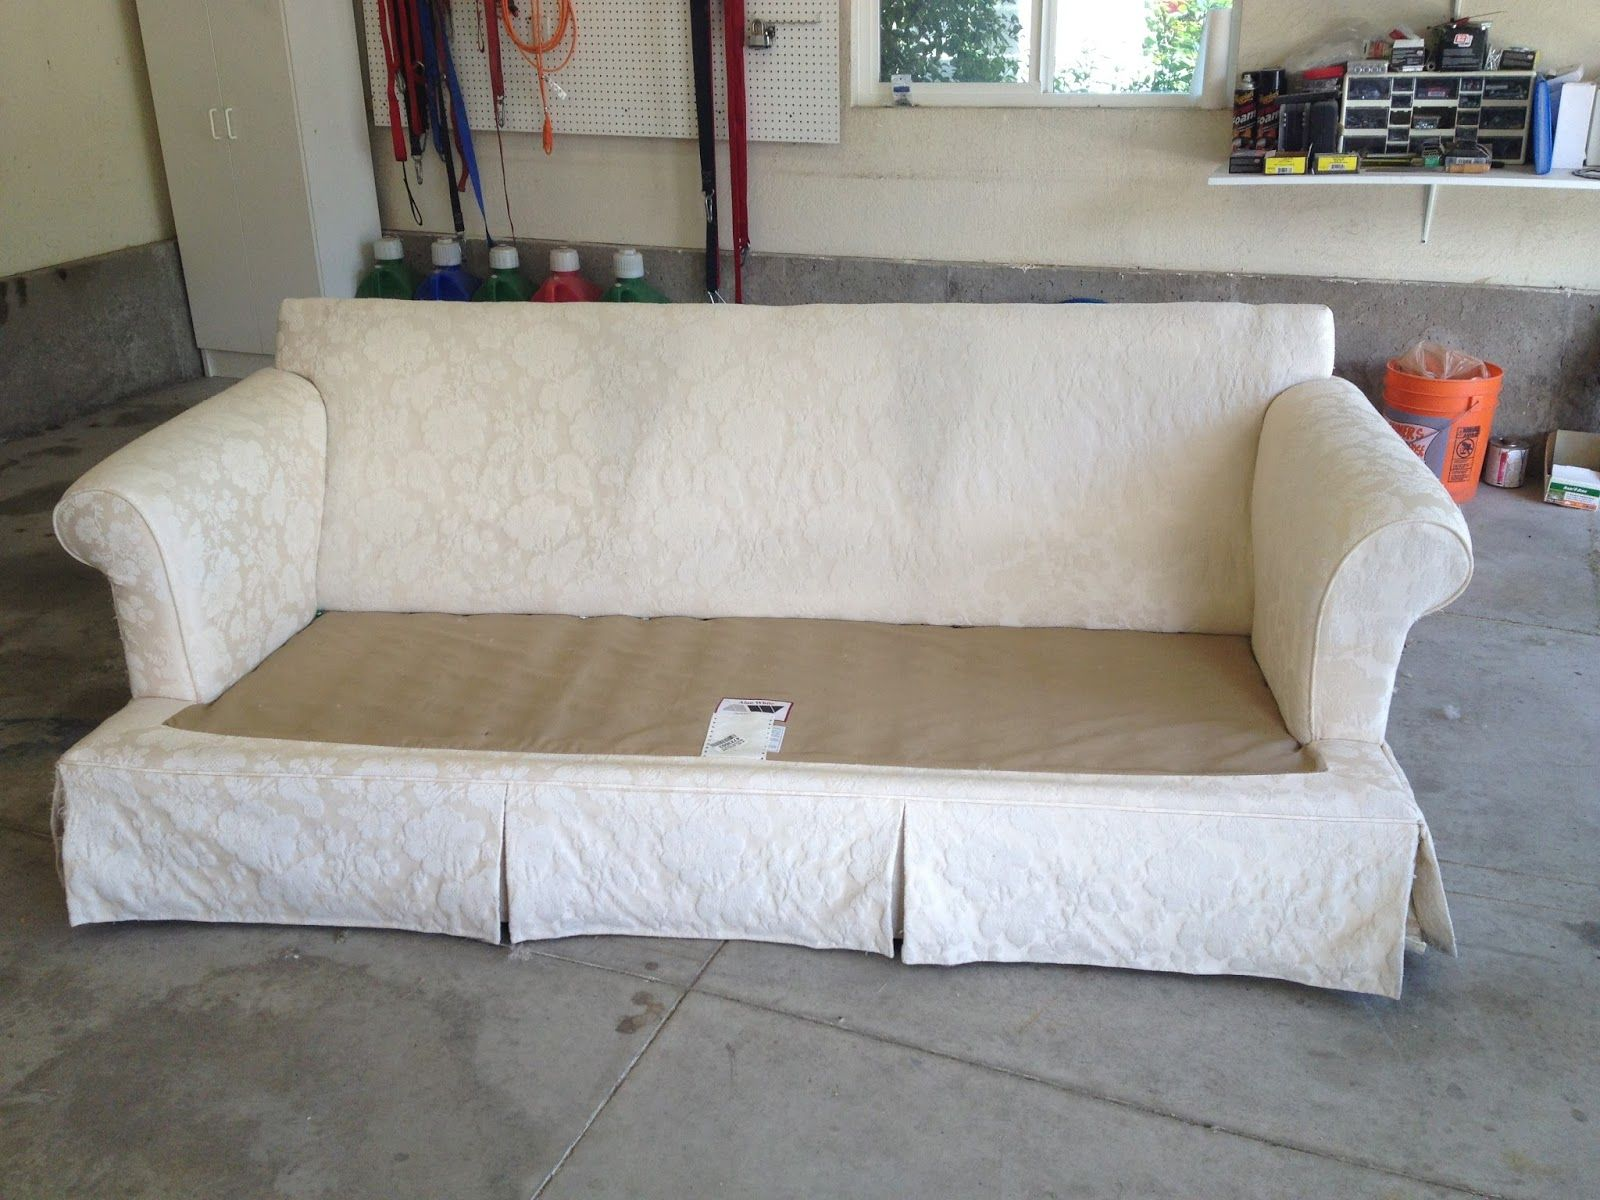 The Sewing Nerd Slipcovers: Couch Slipcover | Slipcovers | Pinterest ...